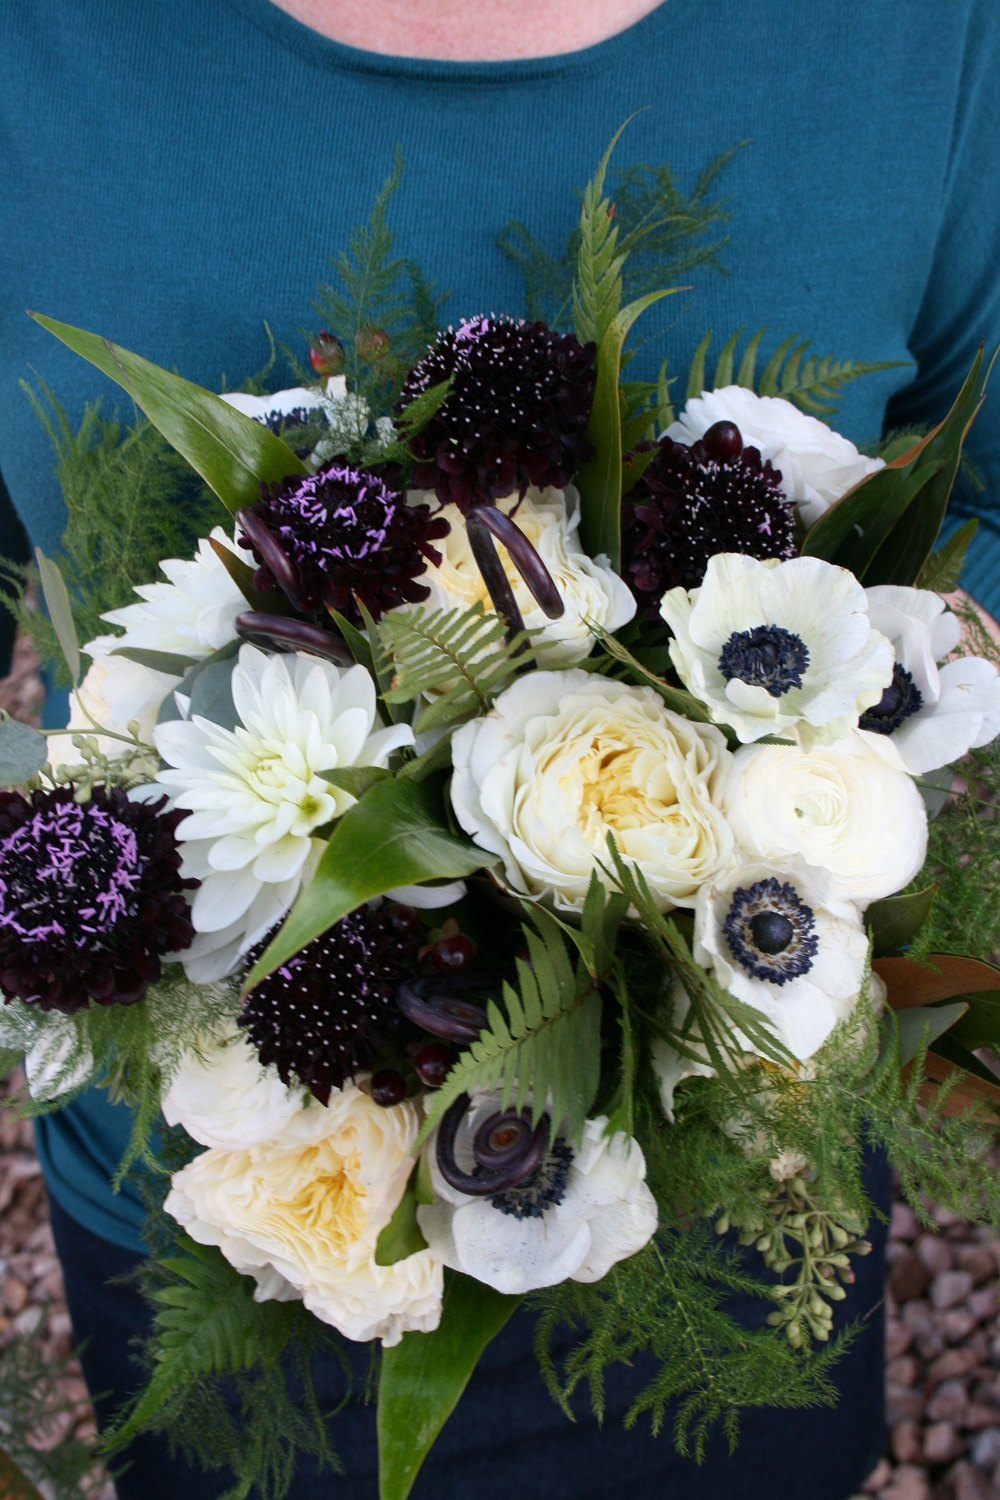 Wedding Bouquet White Flowers Burgundy Flowers Dahlia Bouquet Burgundy Wedding Flowers Minneapolis Bridal Bouquet Anemone Burgundy Garden Rose Aria Lakewood Chapel Dahlias Luna Vinca